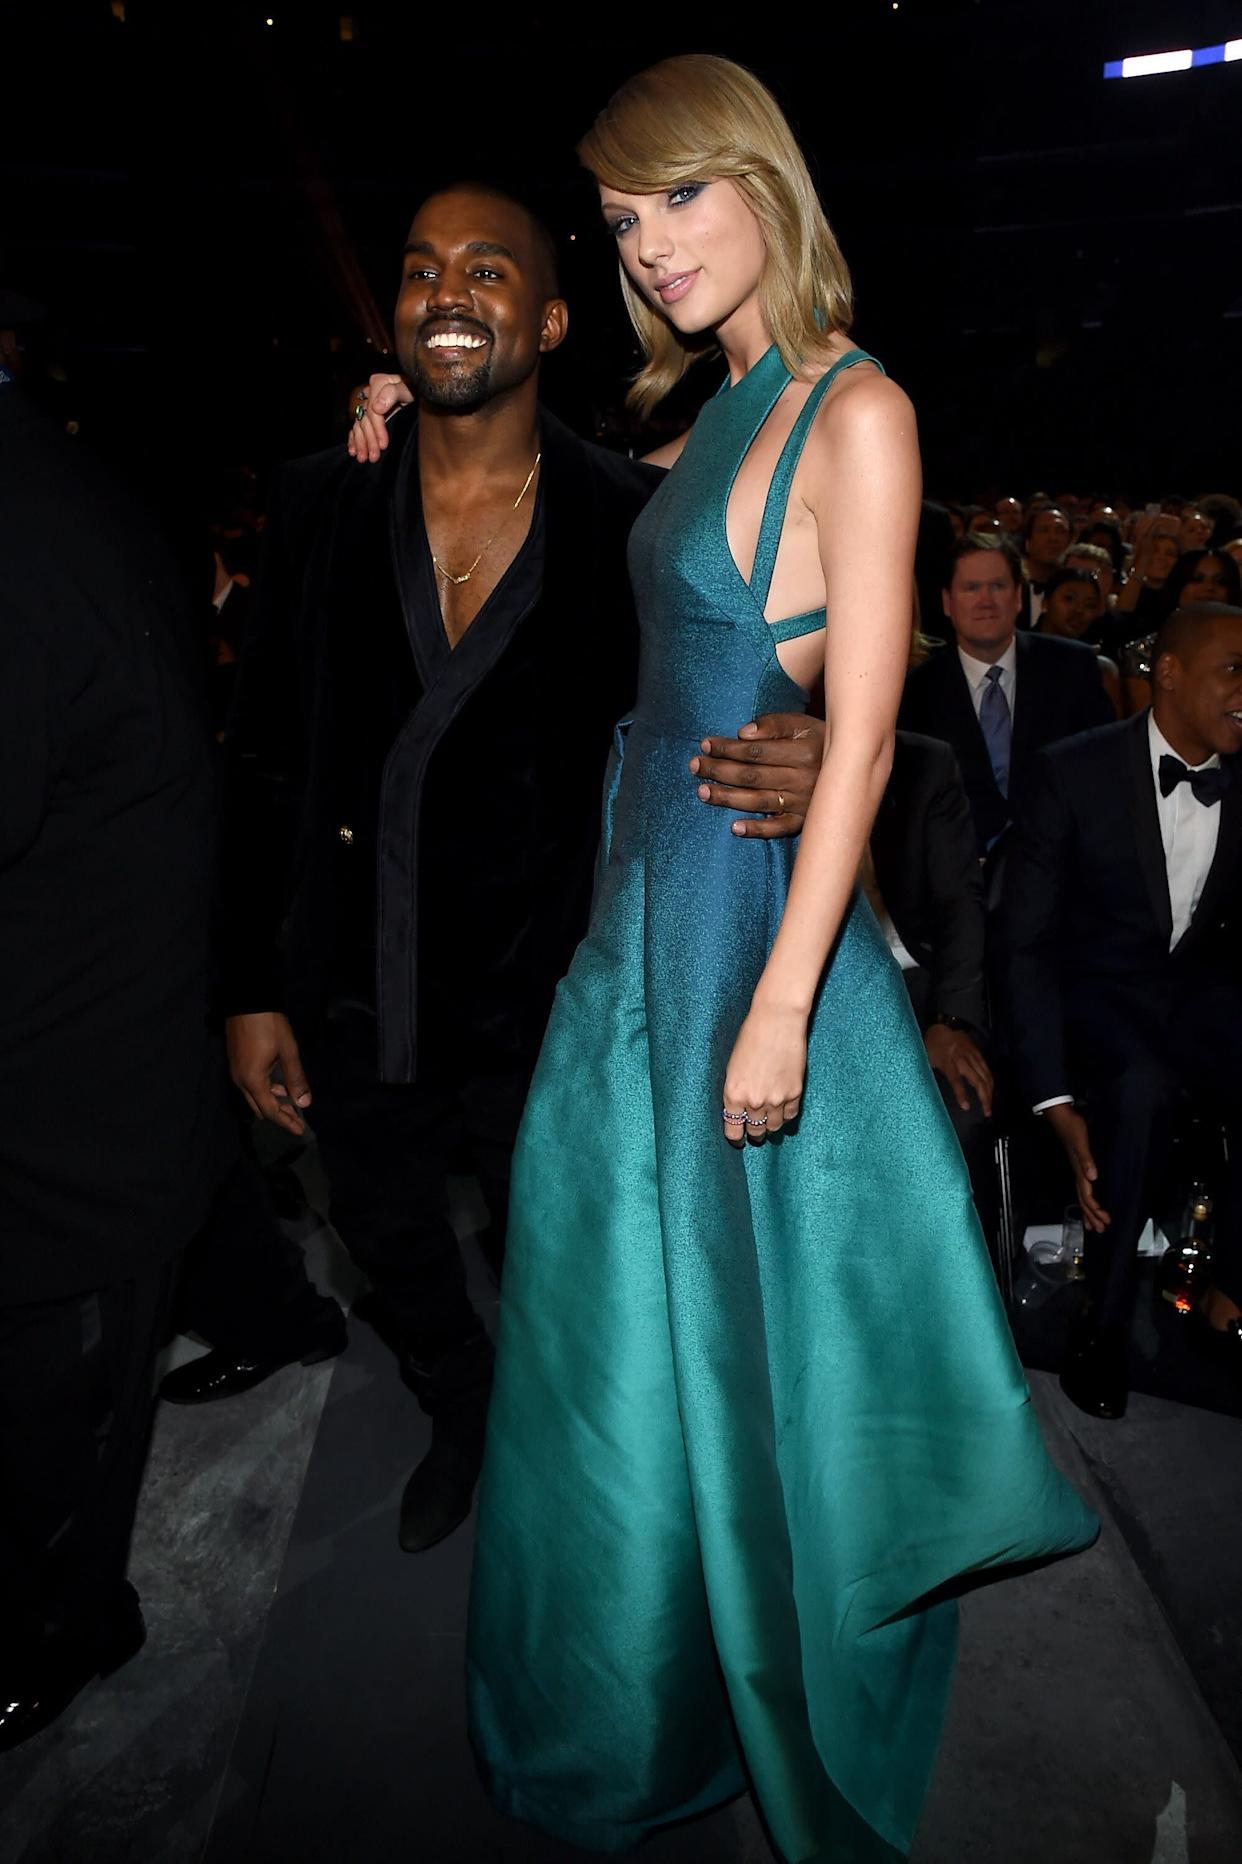 Kanye West and Taylor Swift pose for a photo together at the 2015 Grammys. (Photo: Larry Busacca via Getty Images)